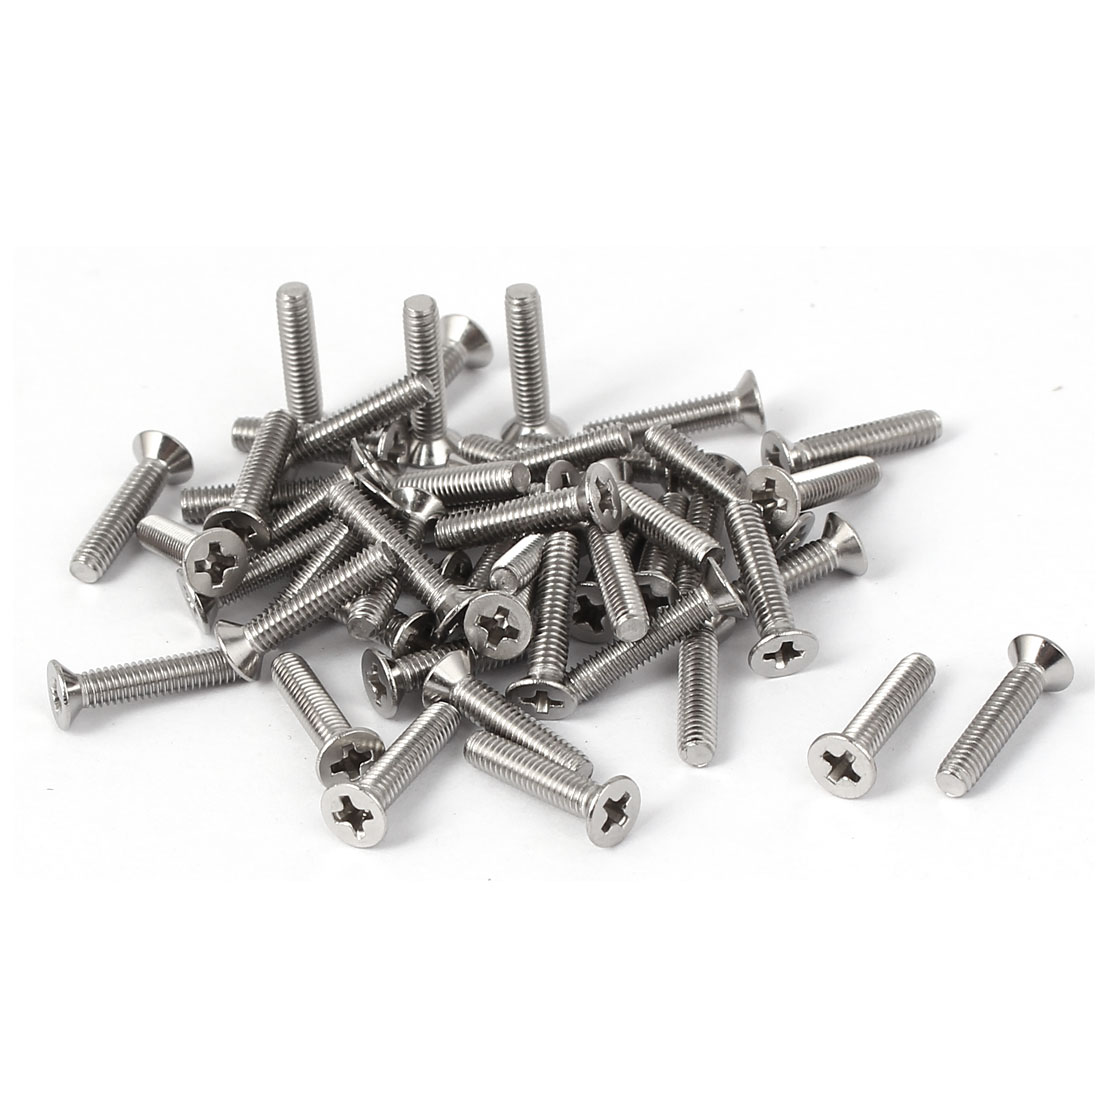 50 Pcs M2.5x12mm 316 Stainless Steel Flat Head Phillips Machine Screws Fasteners